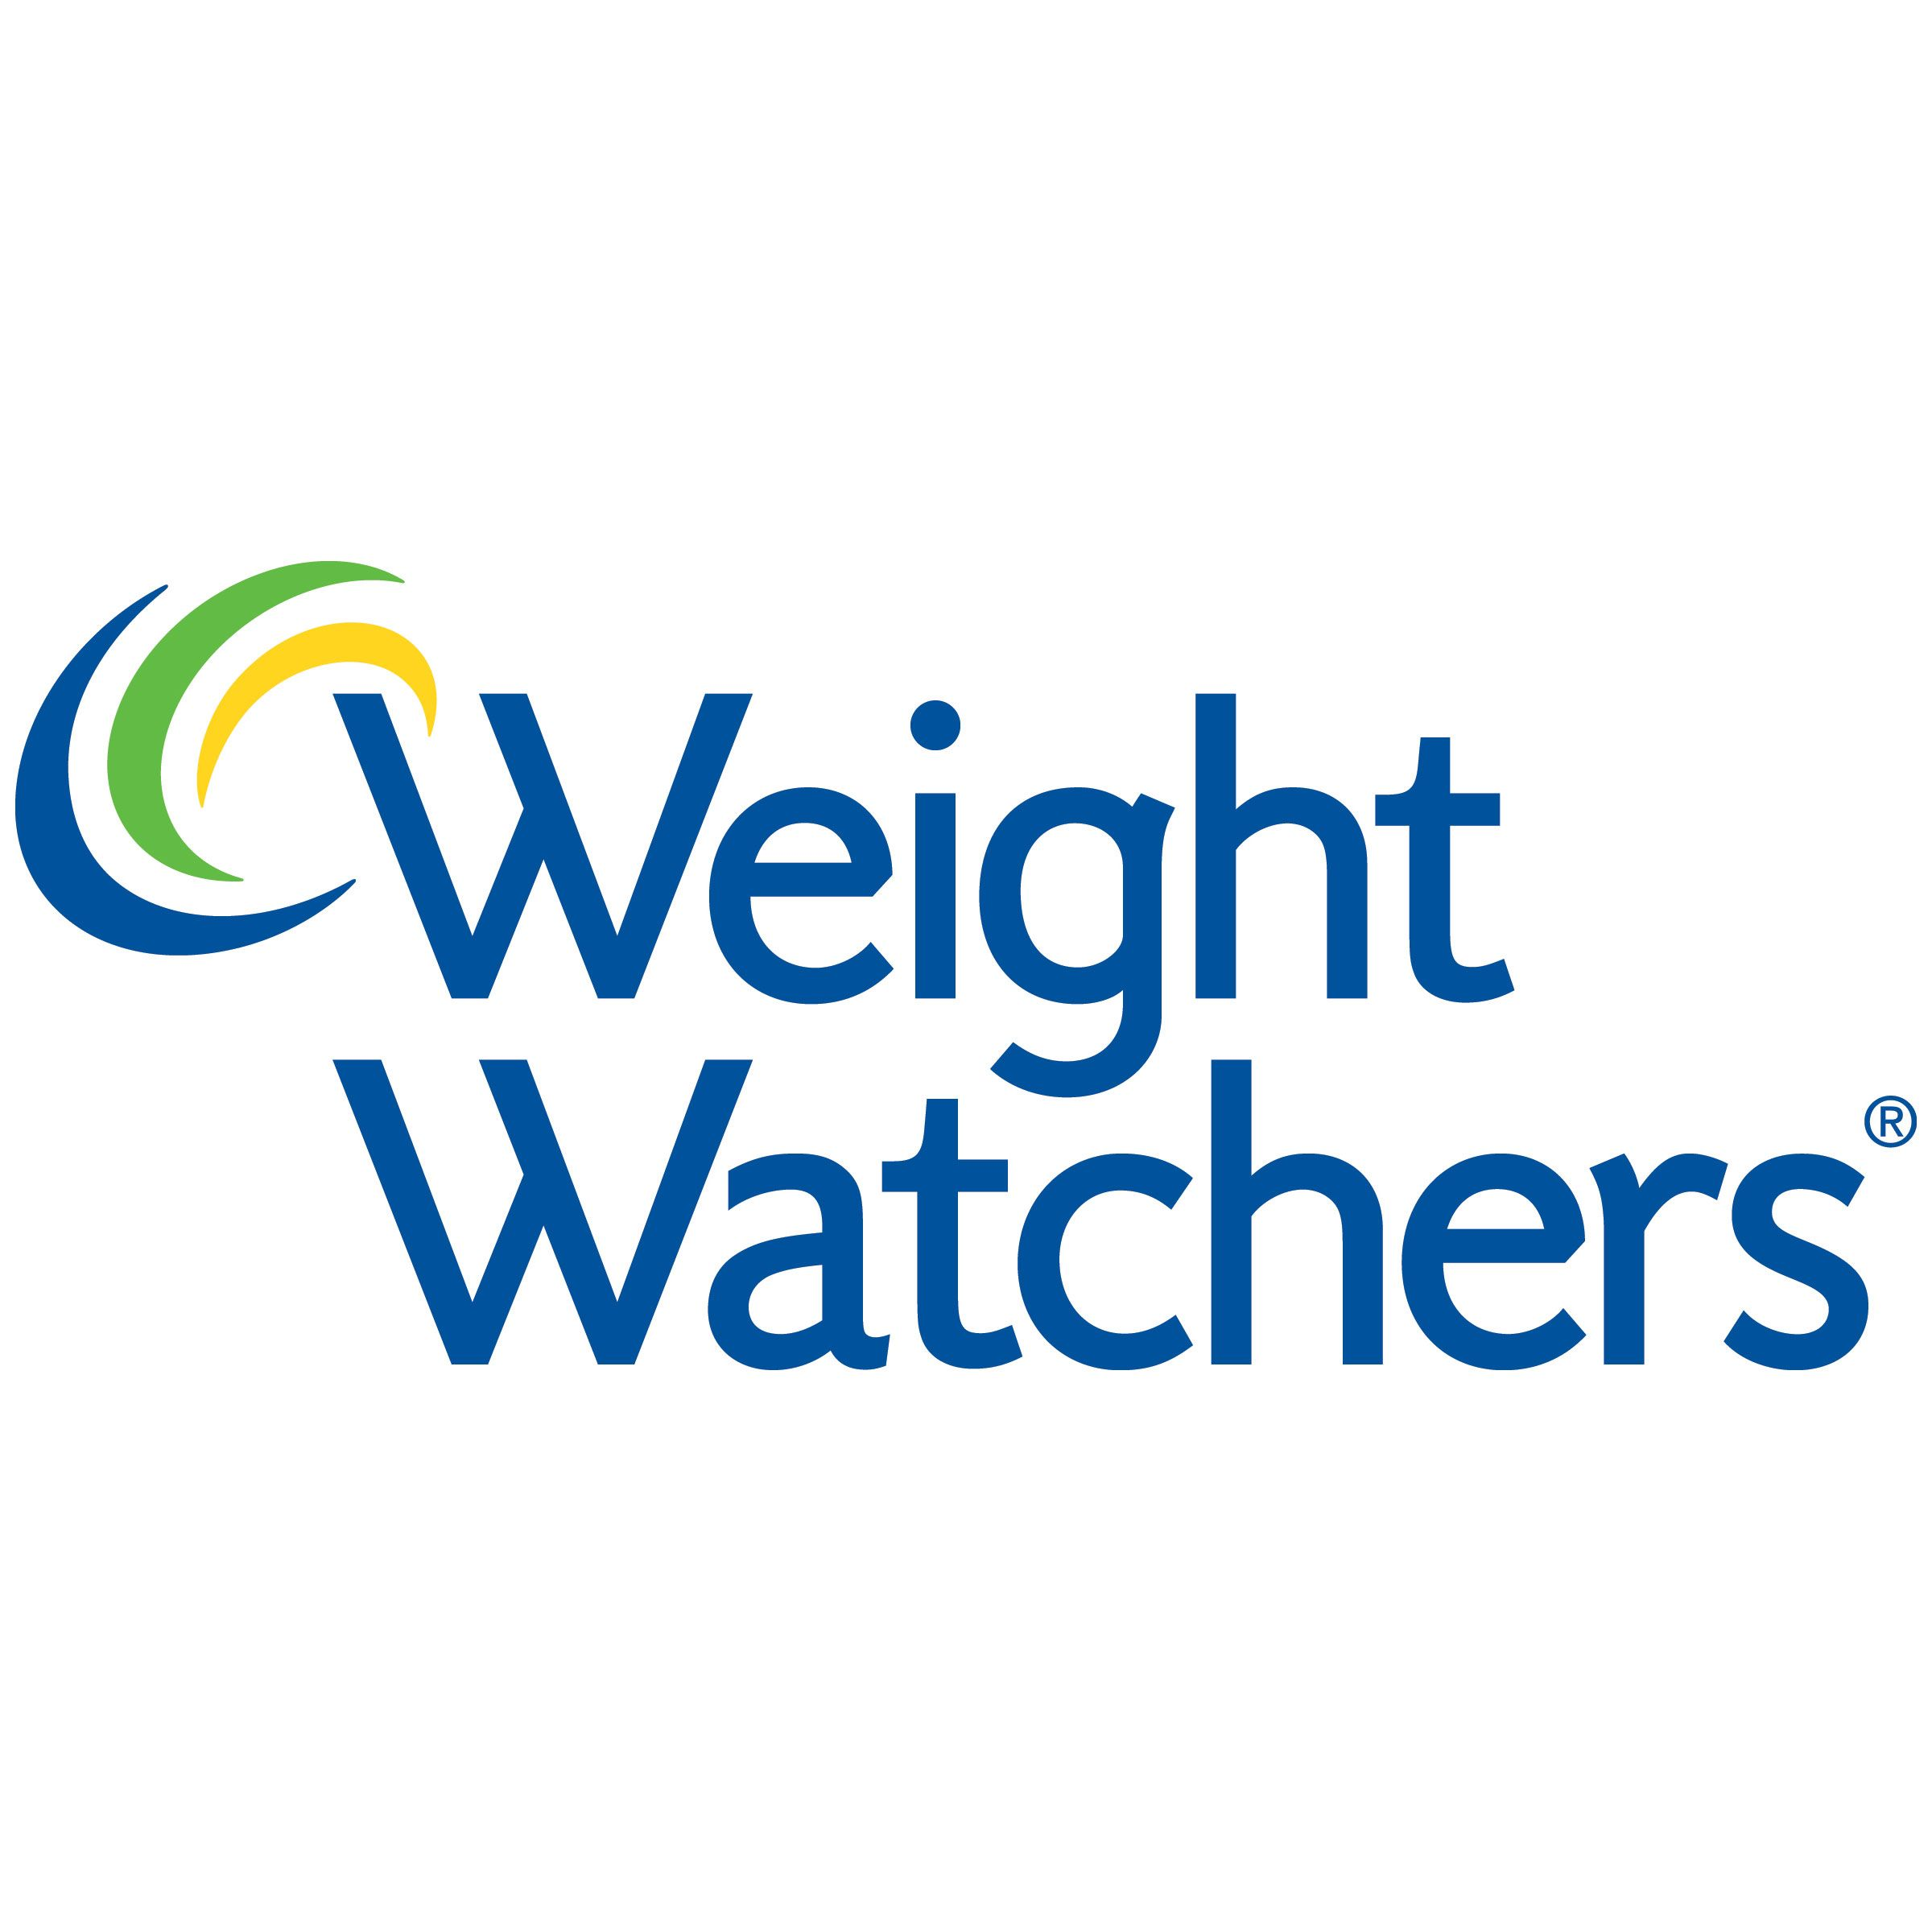 "<p><a href=""https://www.weightwatchers.com/us/"" target=""_blank"" data-tracking-id=""recirc-text-link"">Weight Watchers</a> is a household name for the majority of Americans. Why? Because it works. In fact, the U.S News and World Report <a href=""http://health.usnews.com/best-diet"" data-tracking-id=""recirc-text-link"" target=""_blank"">named this the best weight-loss diet</a> for 2016 in their annual rankings — and with good reason. The balanced program lets you eat what you want, track your choices via a points system, and build a weight loss support network with fellow Weight Watchers' members.</p><p><strong data-verified=""redactor"" data-redactor-tag=""strong"">RELATED: <a href=""http://www.redbookmag.com/body/health-fitness/features/g3162/weight-loss-apps/"" target=""_blank"" data-tracking-id=""recirc-text-link"">The Best Weight Loss Apps for Real Results</a><span class=""redactor-invisible-space"" data-verified=""redactor"" data-redactor-tag=""span"" data-redactor-class=""redactor-invisible-space""><a href=""http://www.redbookmag.com/body/health-fitness/features/g3162/weight-loss-apps/""></a></span></strong><br></p>"